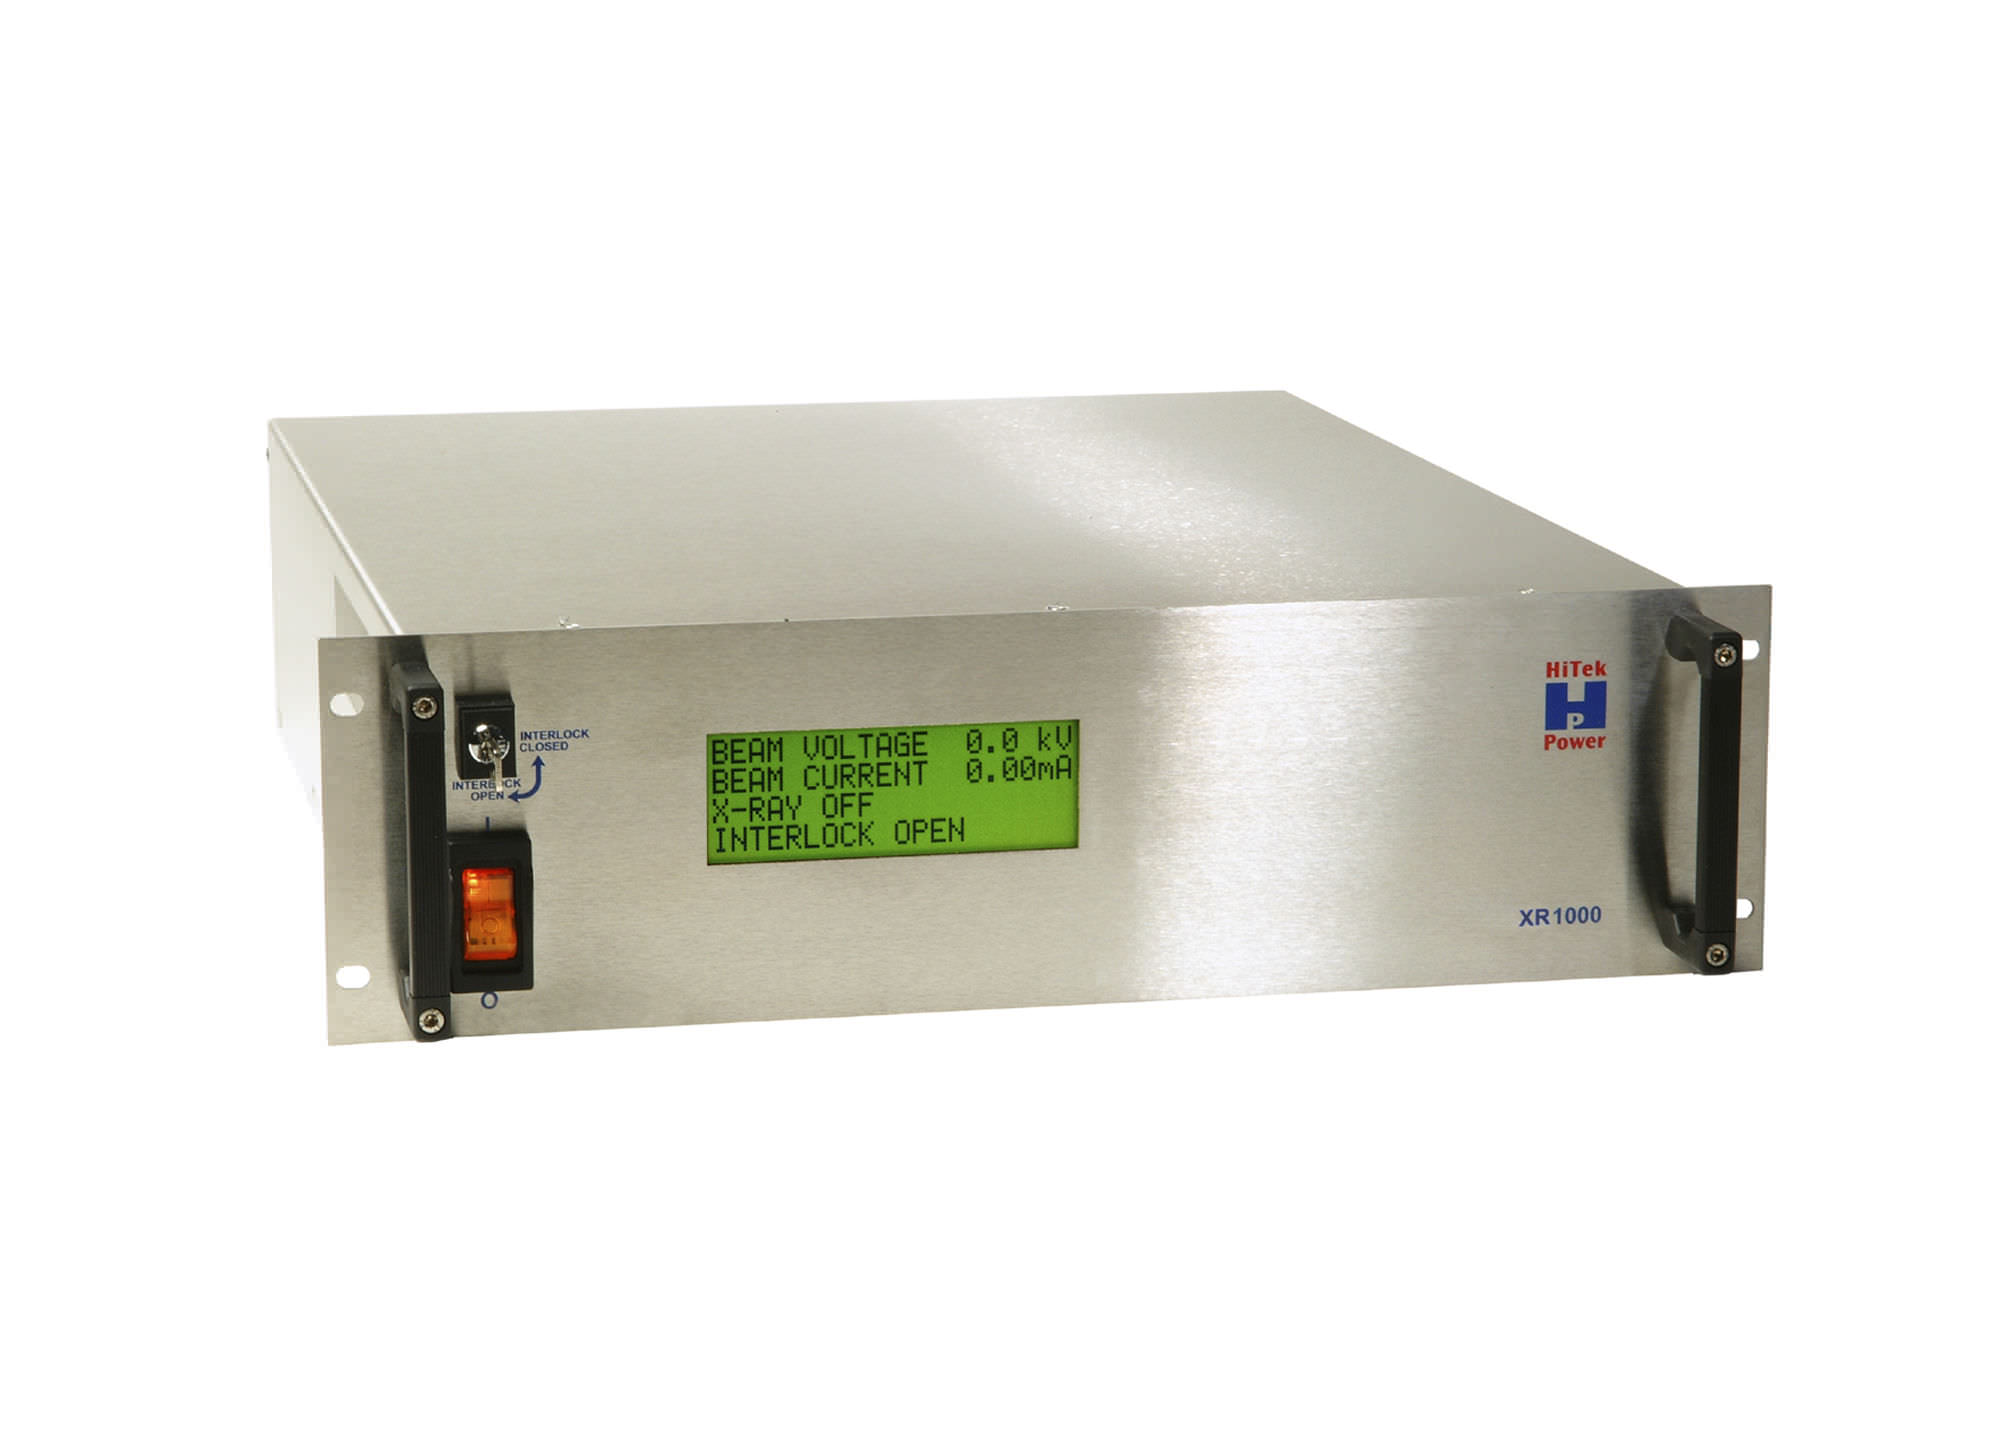 Ac Dc Power Supply Rack Mount With Short Circuit Protection 60 To 90 Kv 1 Kw Xr1000 Series